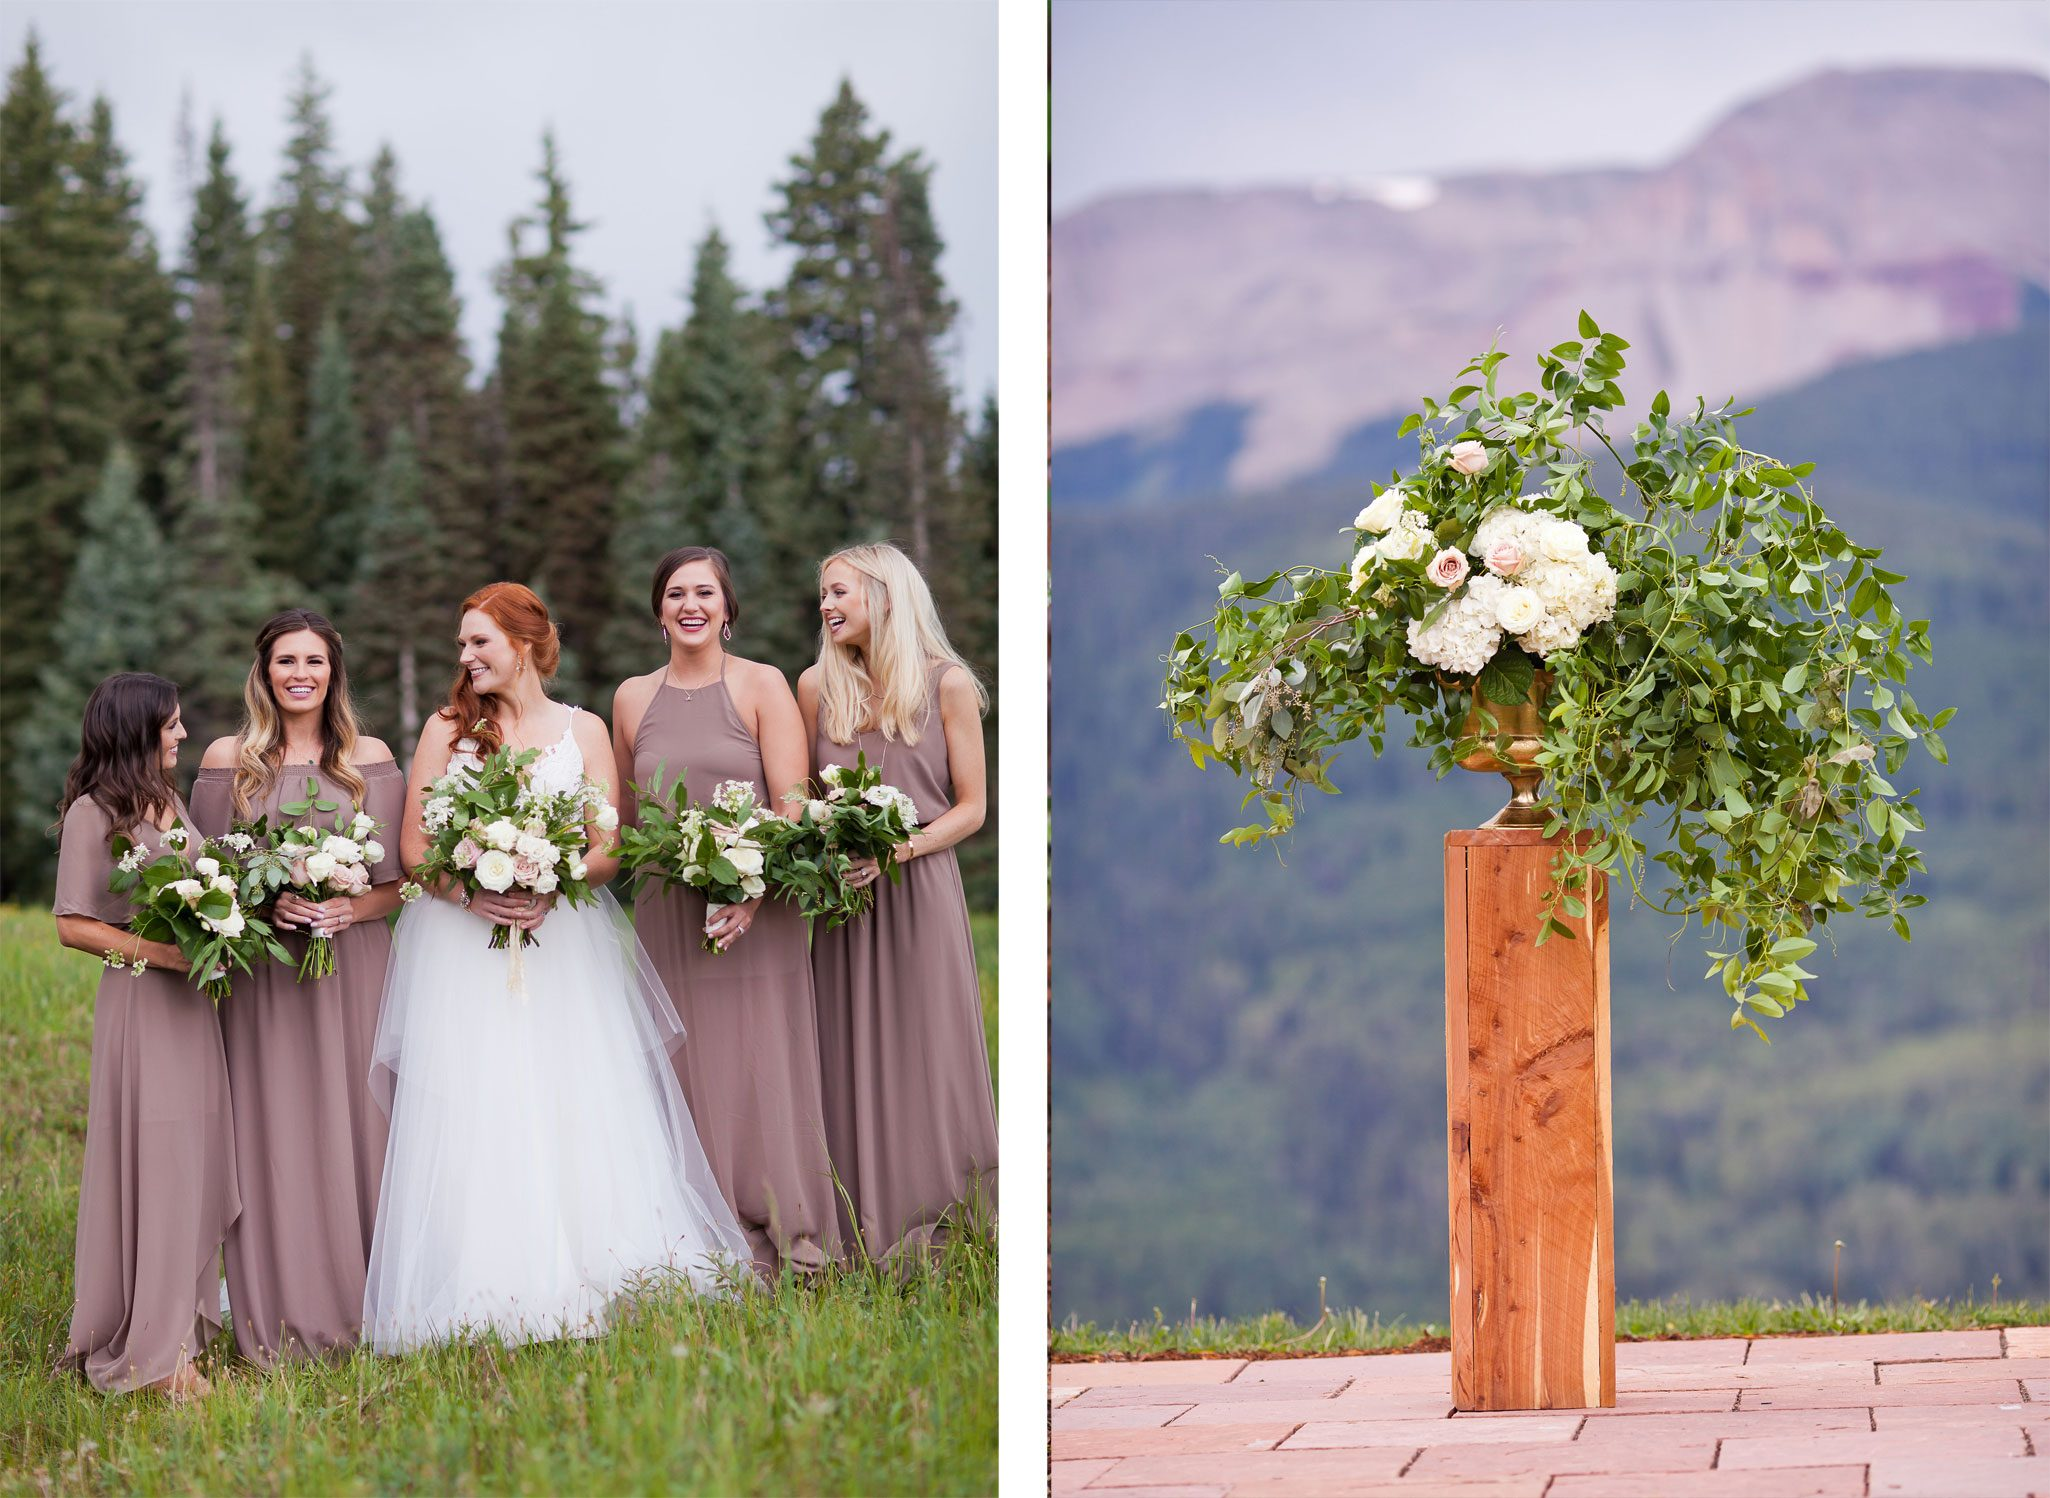 Flowers | A Modern Mountaintop Destination Wedding at Purgatory Resort, Durango, Colorado